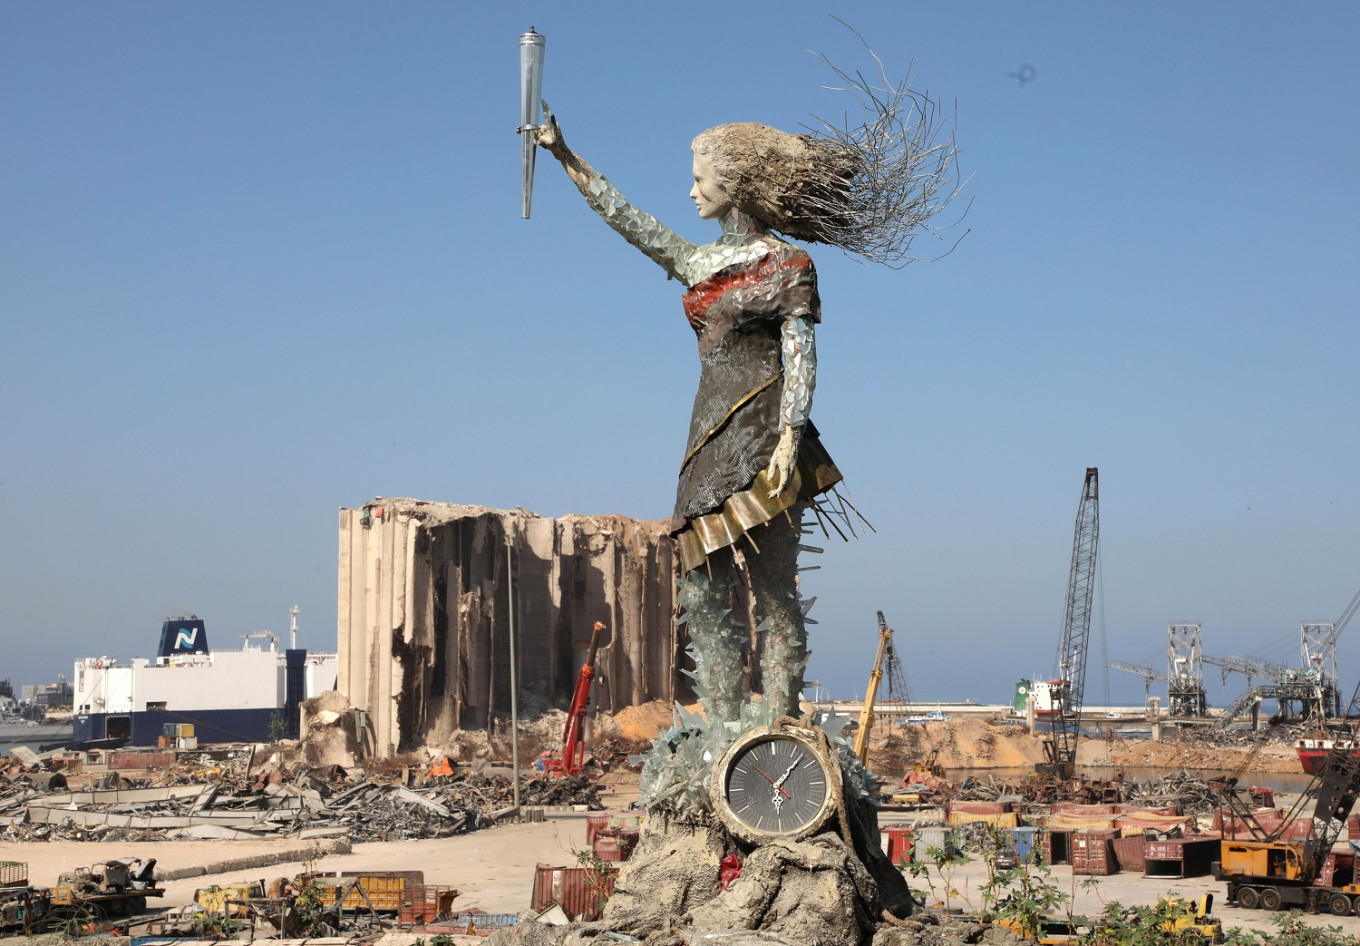 'Rise from the rubble': Lebanese artist turns blast debris into symbol of hope